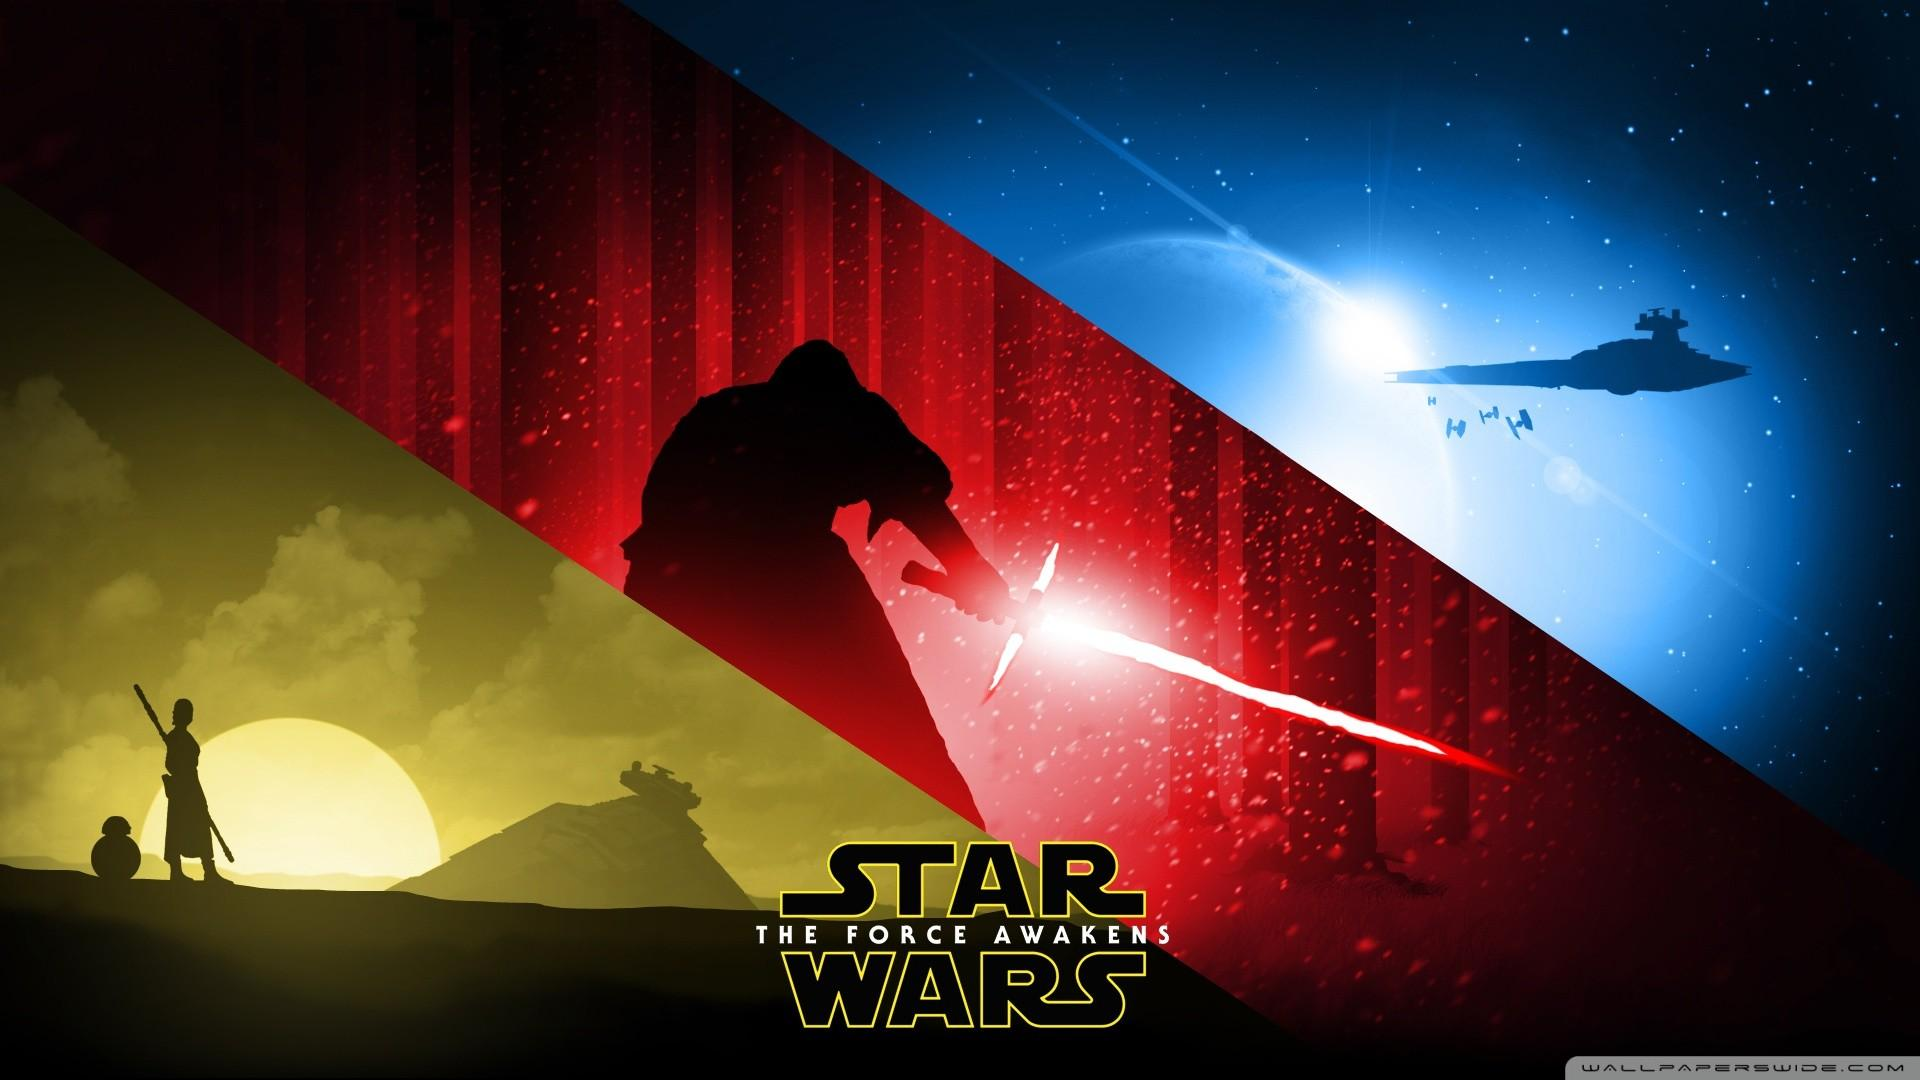 Star Wars 9 Wallpapers Wallpaper Cave